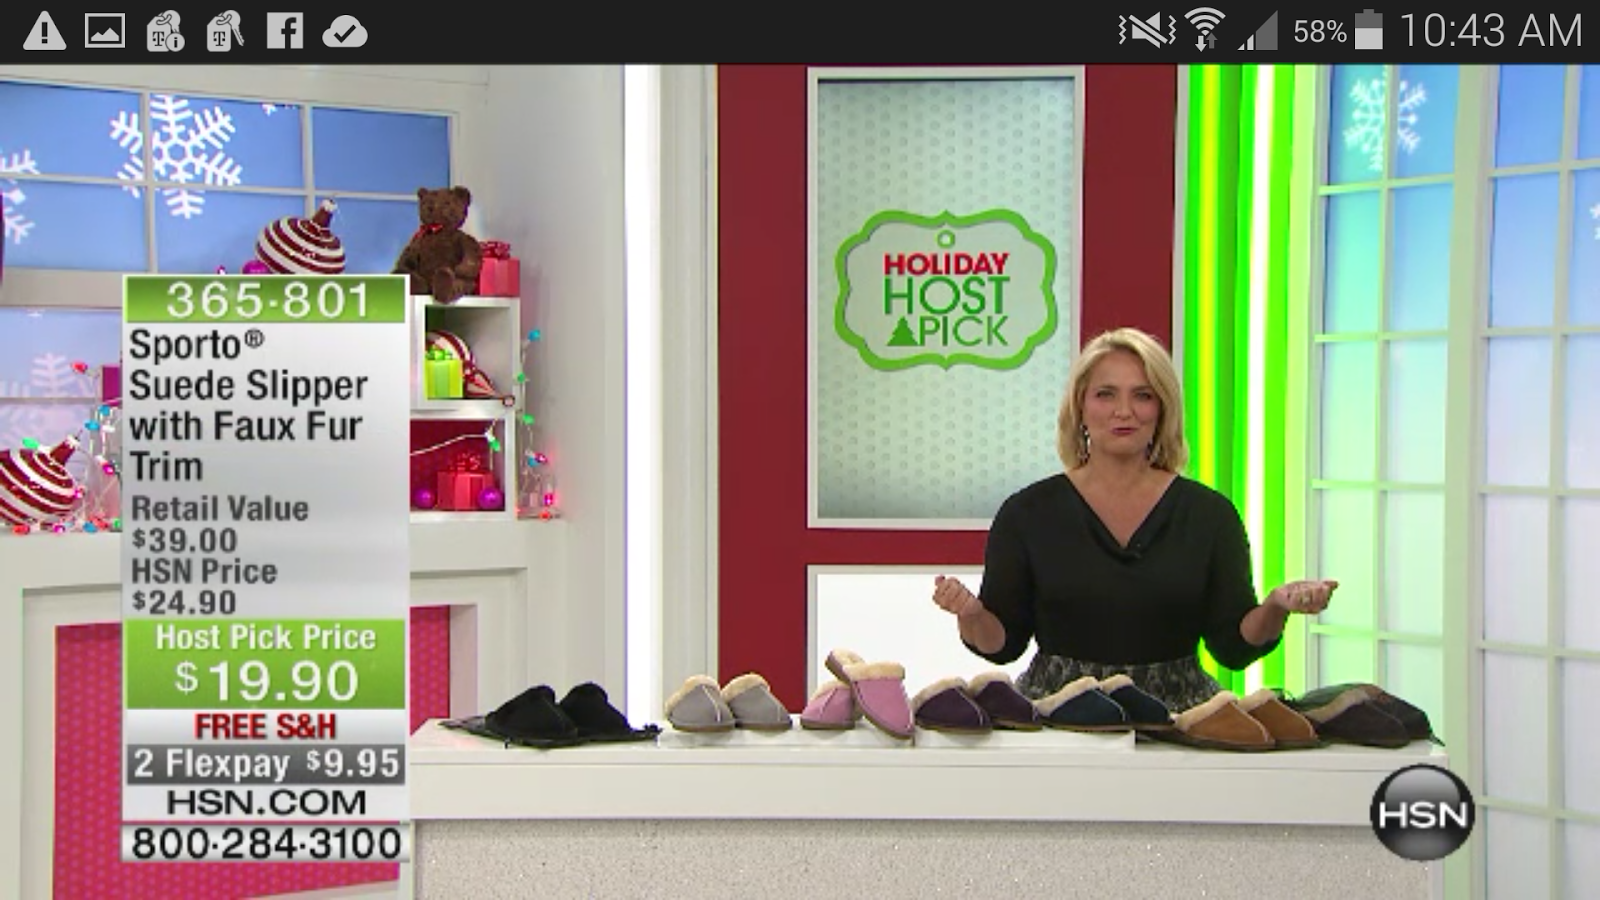 HSN Phone Shop App - Android Apps on Google Play